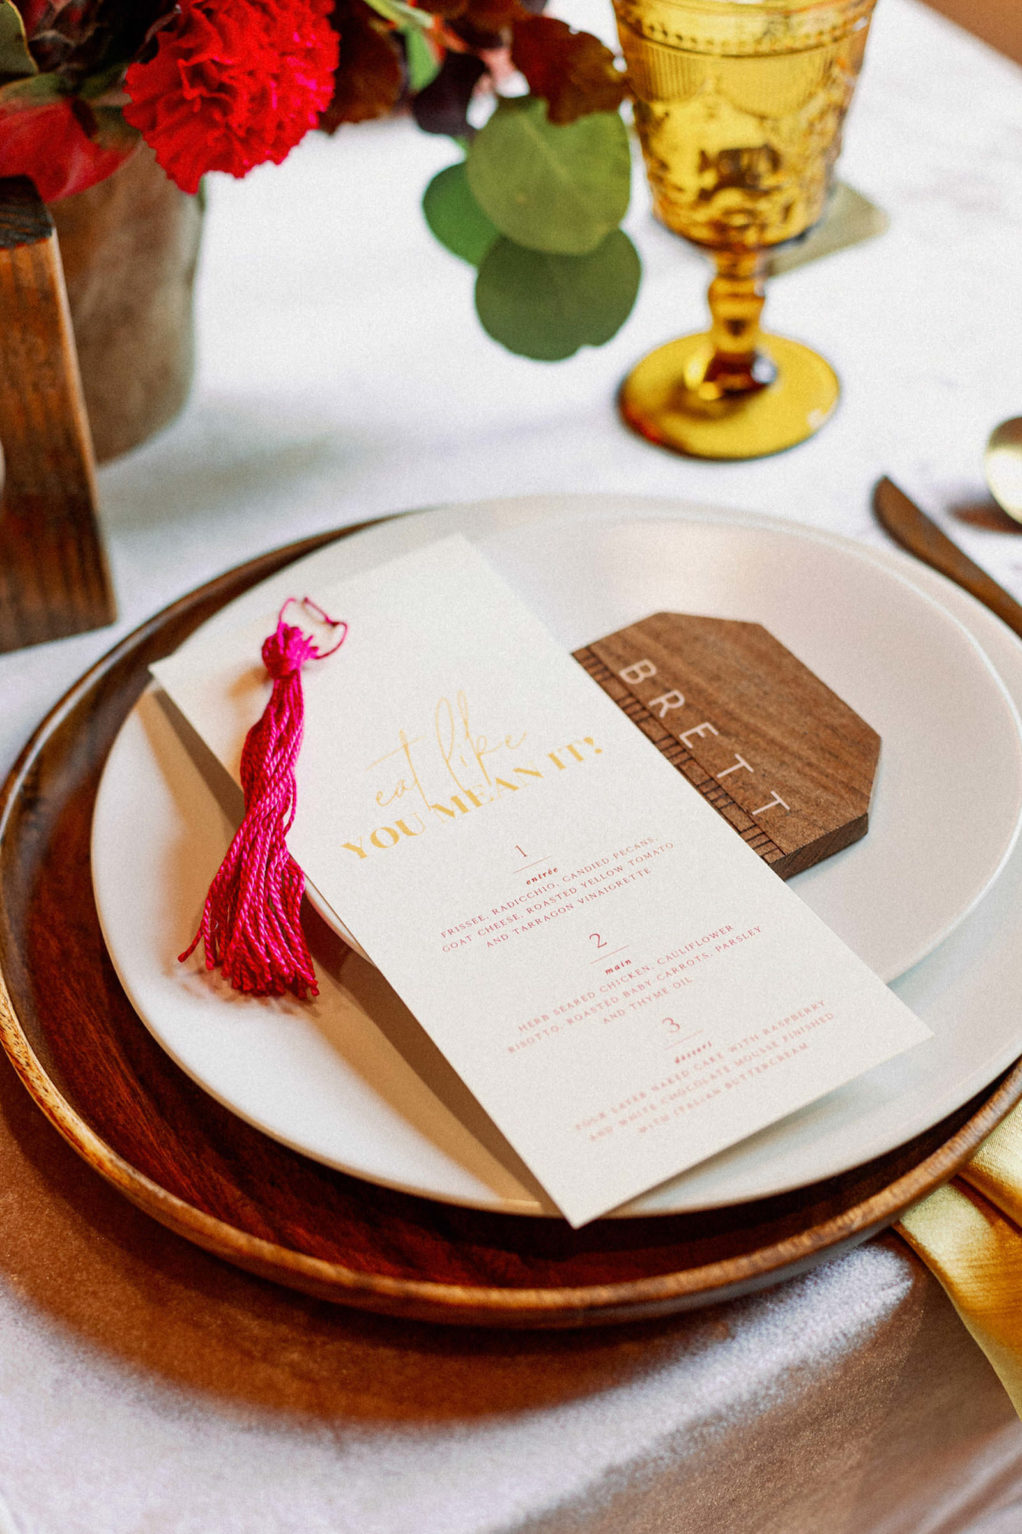 Whimsical and Colorful Wedding Reception Decor, Wooden Charger and Geometric Wood Shape Place Card, Hot Pink Fuschia Tassel, White and Gold Font Menu, Vintage Glassware   Tampa Bay Wedding Photographer Dewitt for Love   Linen Rentals Kate Ryan Event Rentals